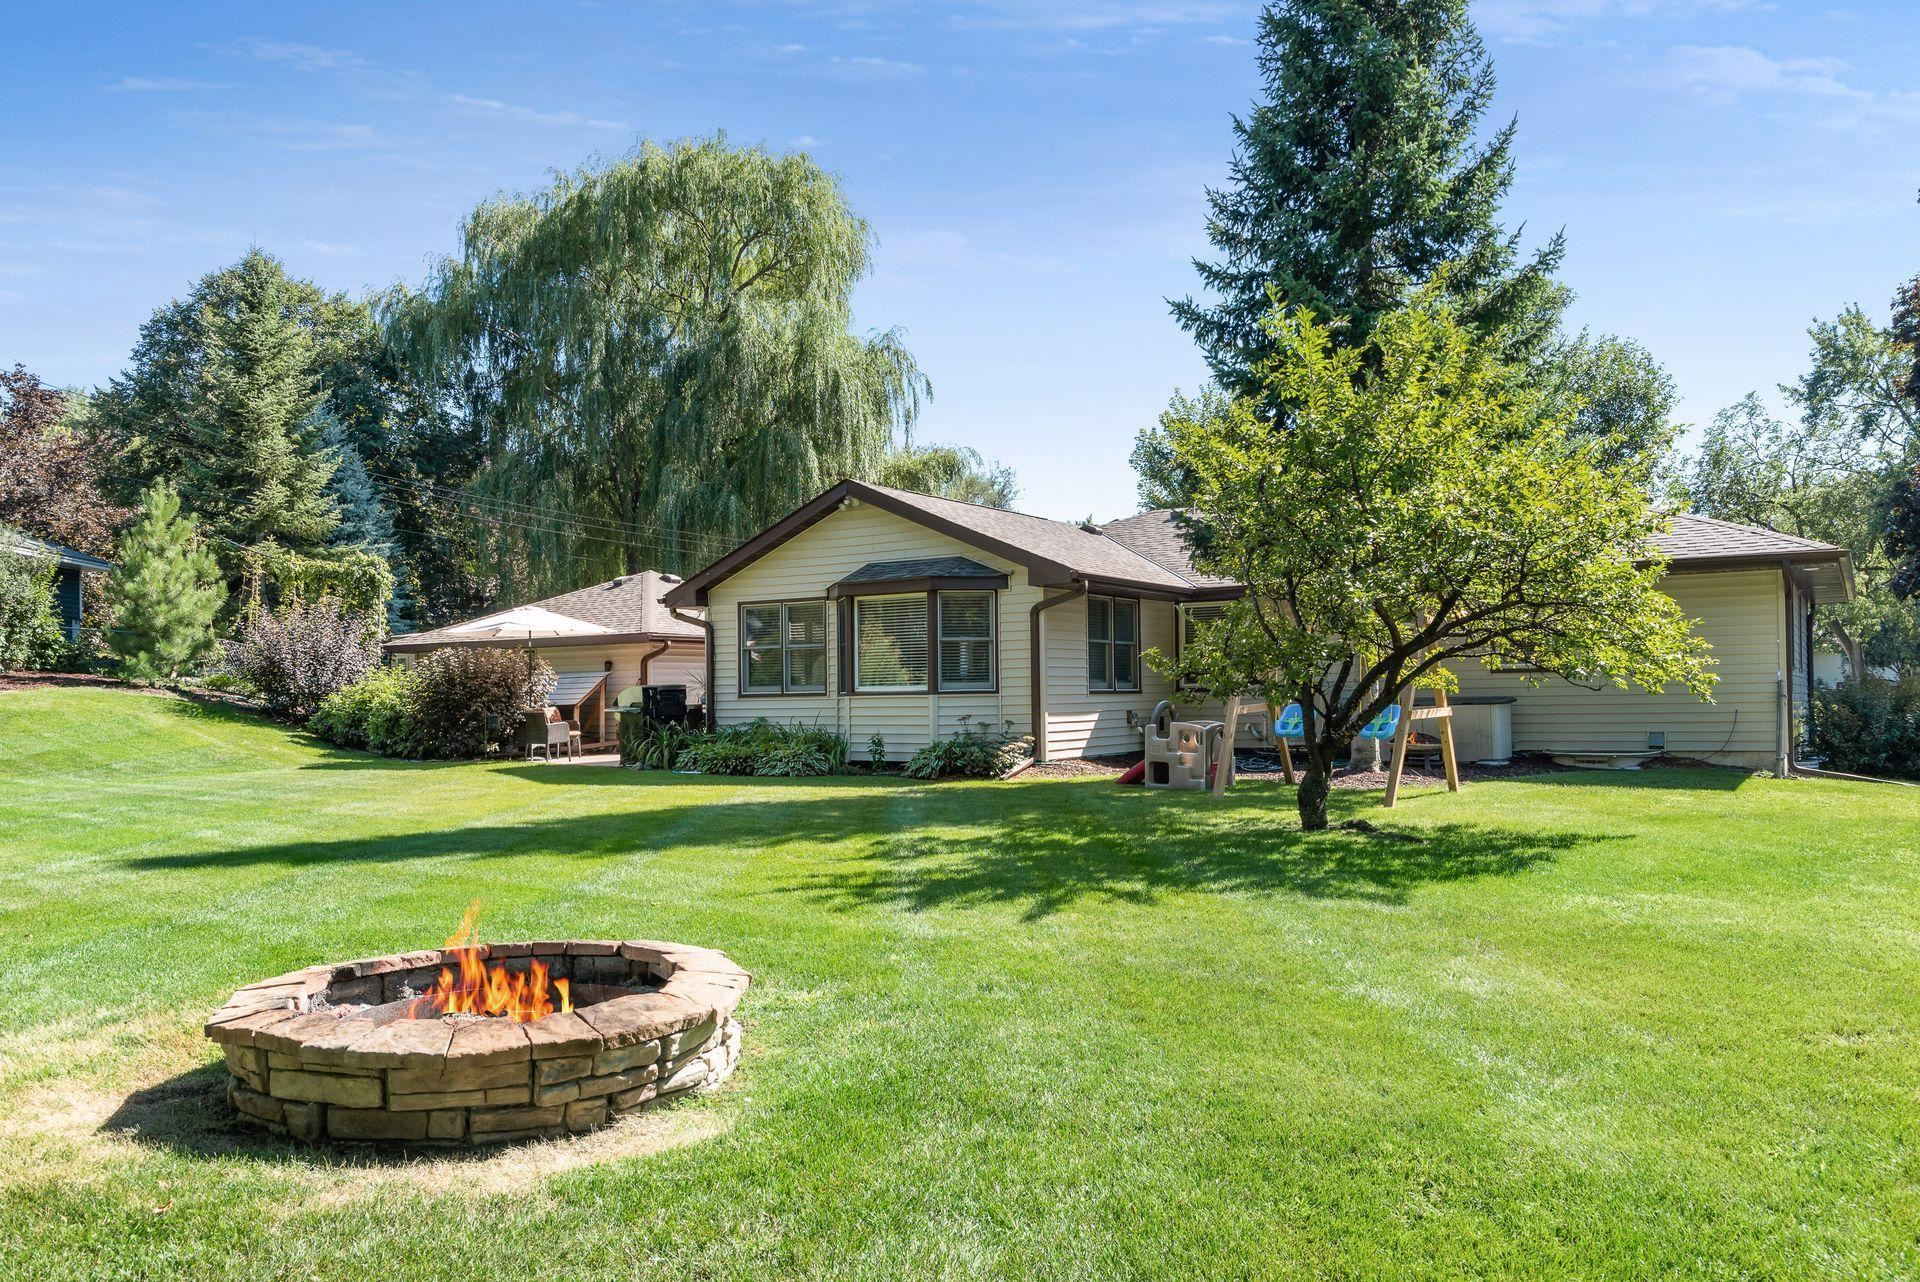 Photo of 10413 Wentworth Avenue S, Bloomington, MN 55420 (MLS # 5743443)